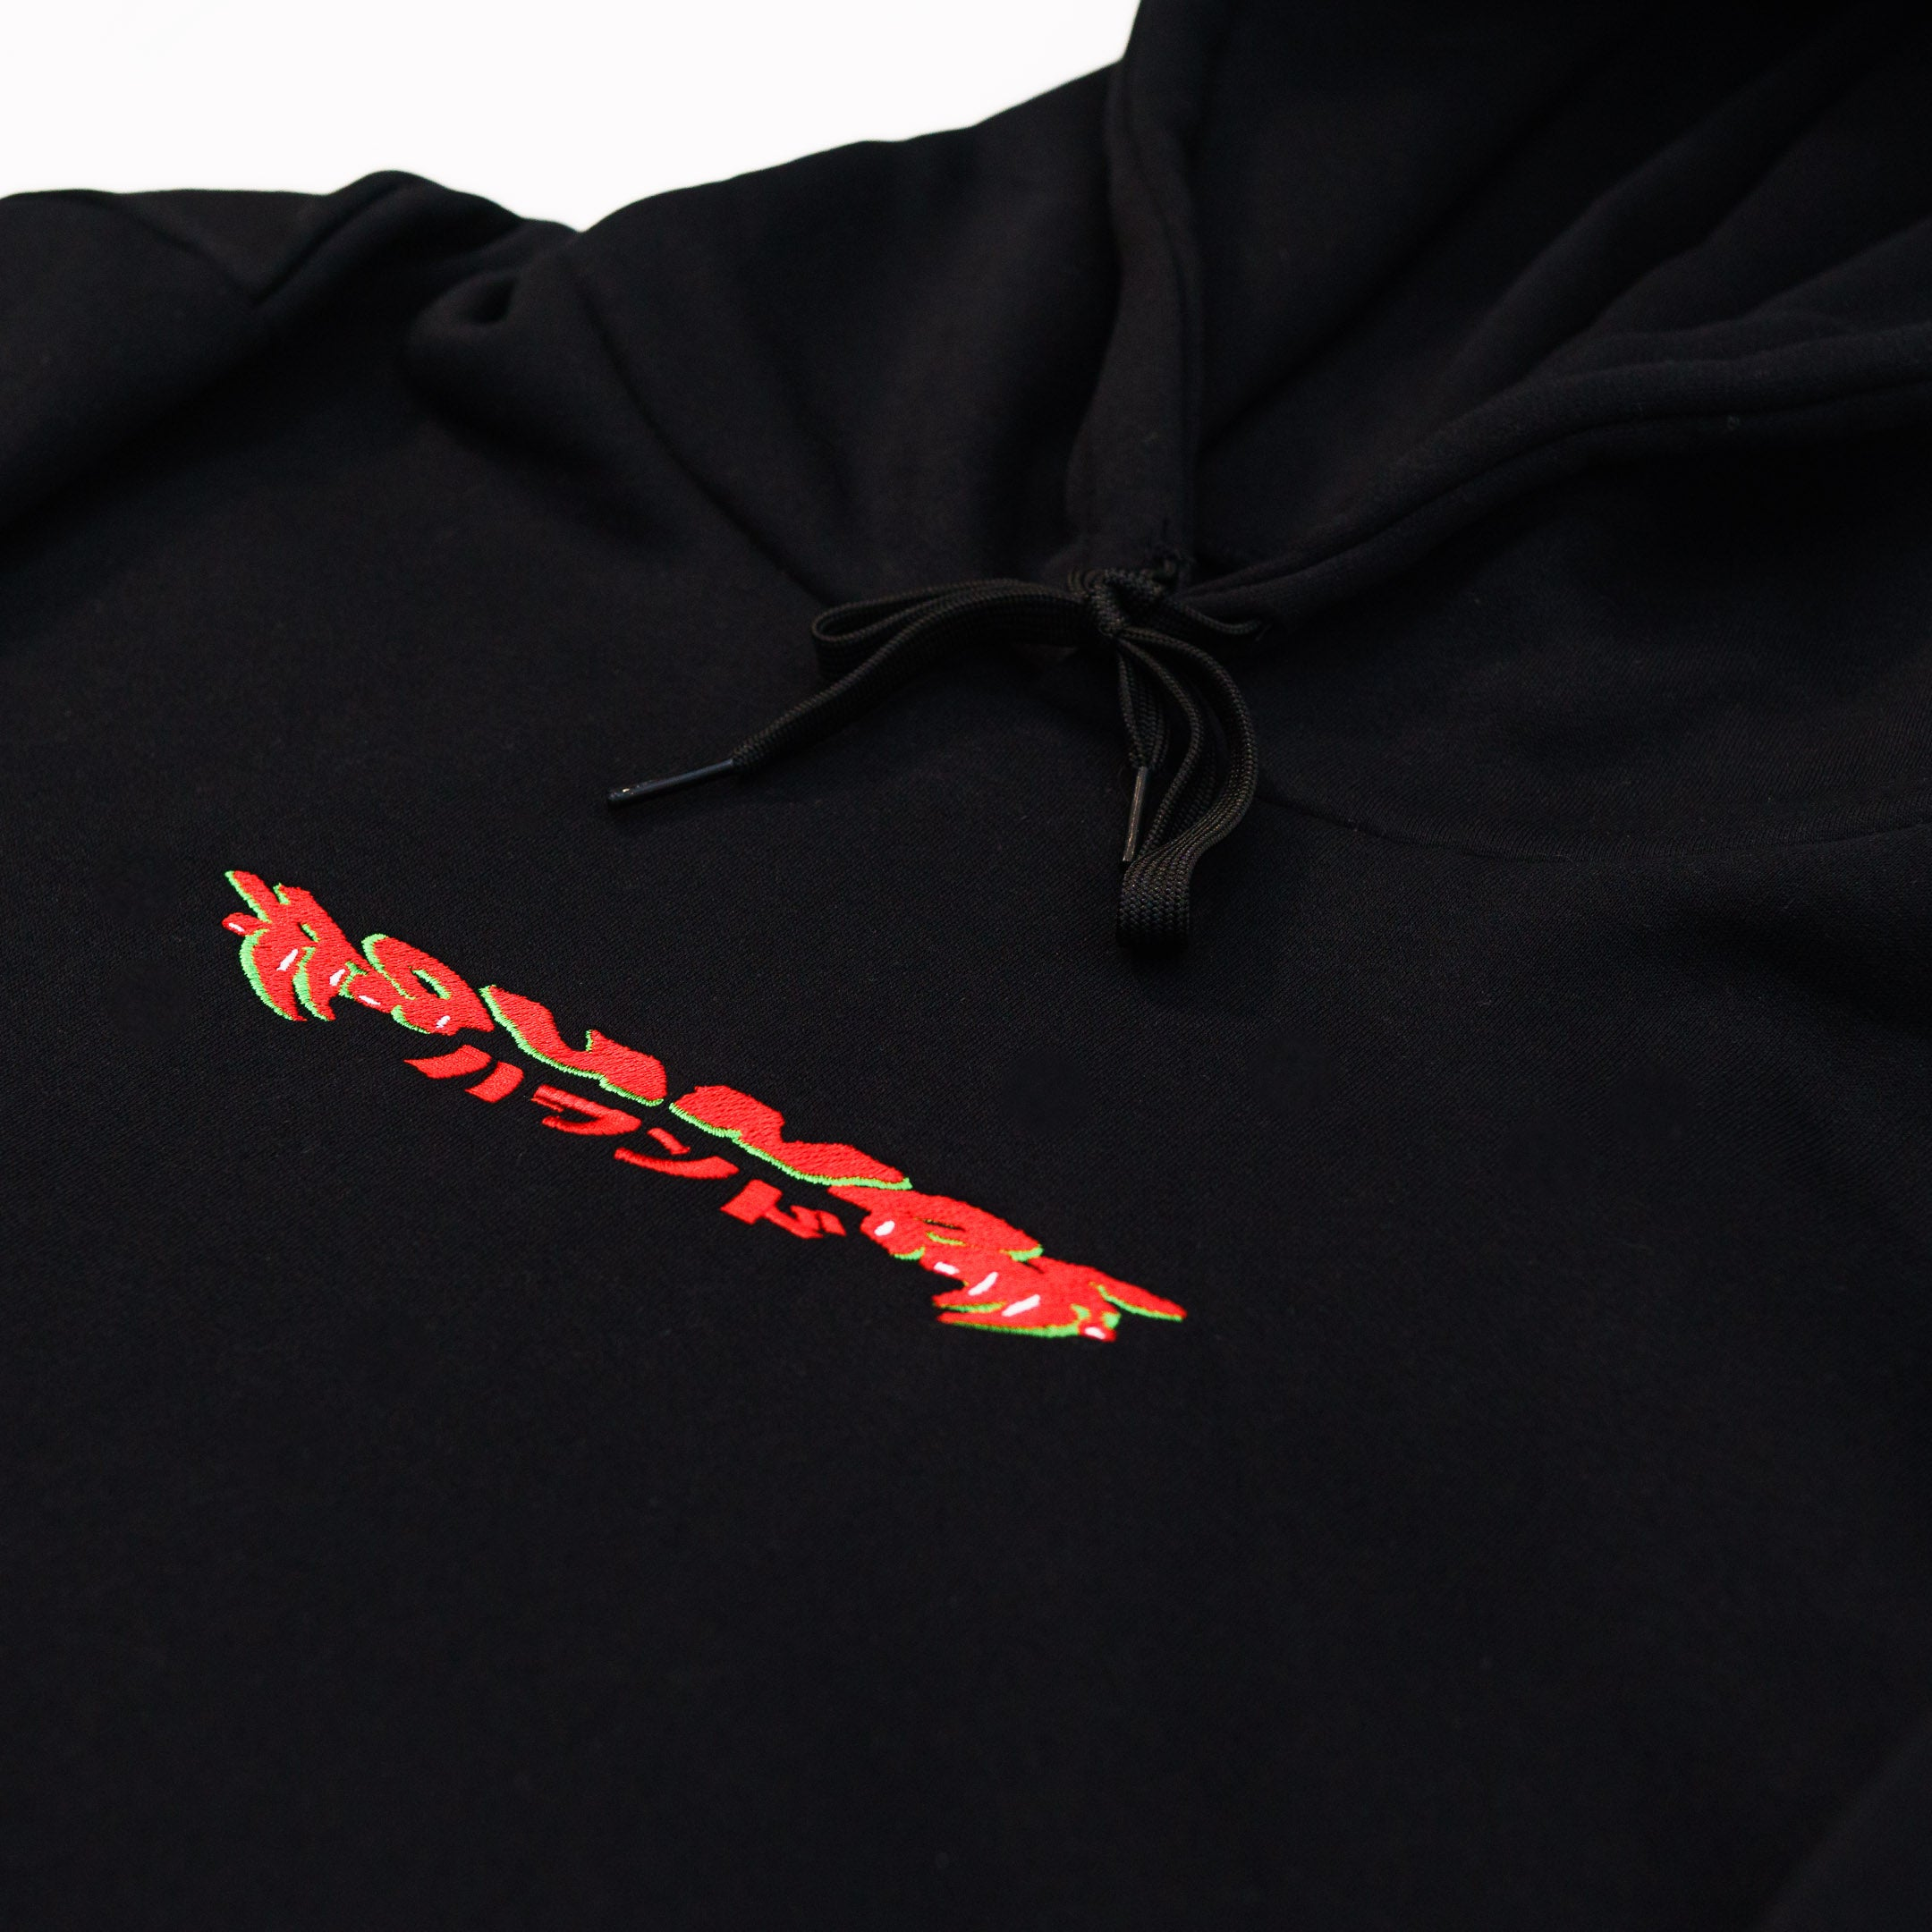 HOUNDS HOOD - Australia Clothing - Streetwear Clothing